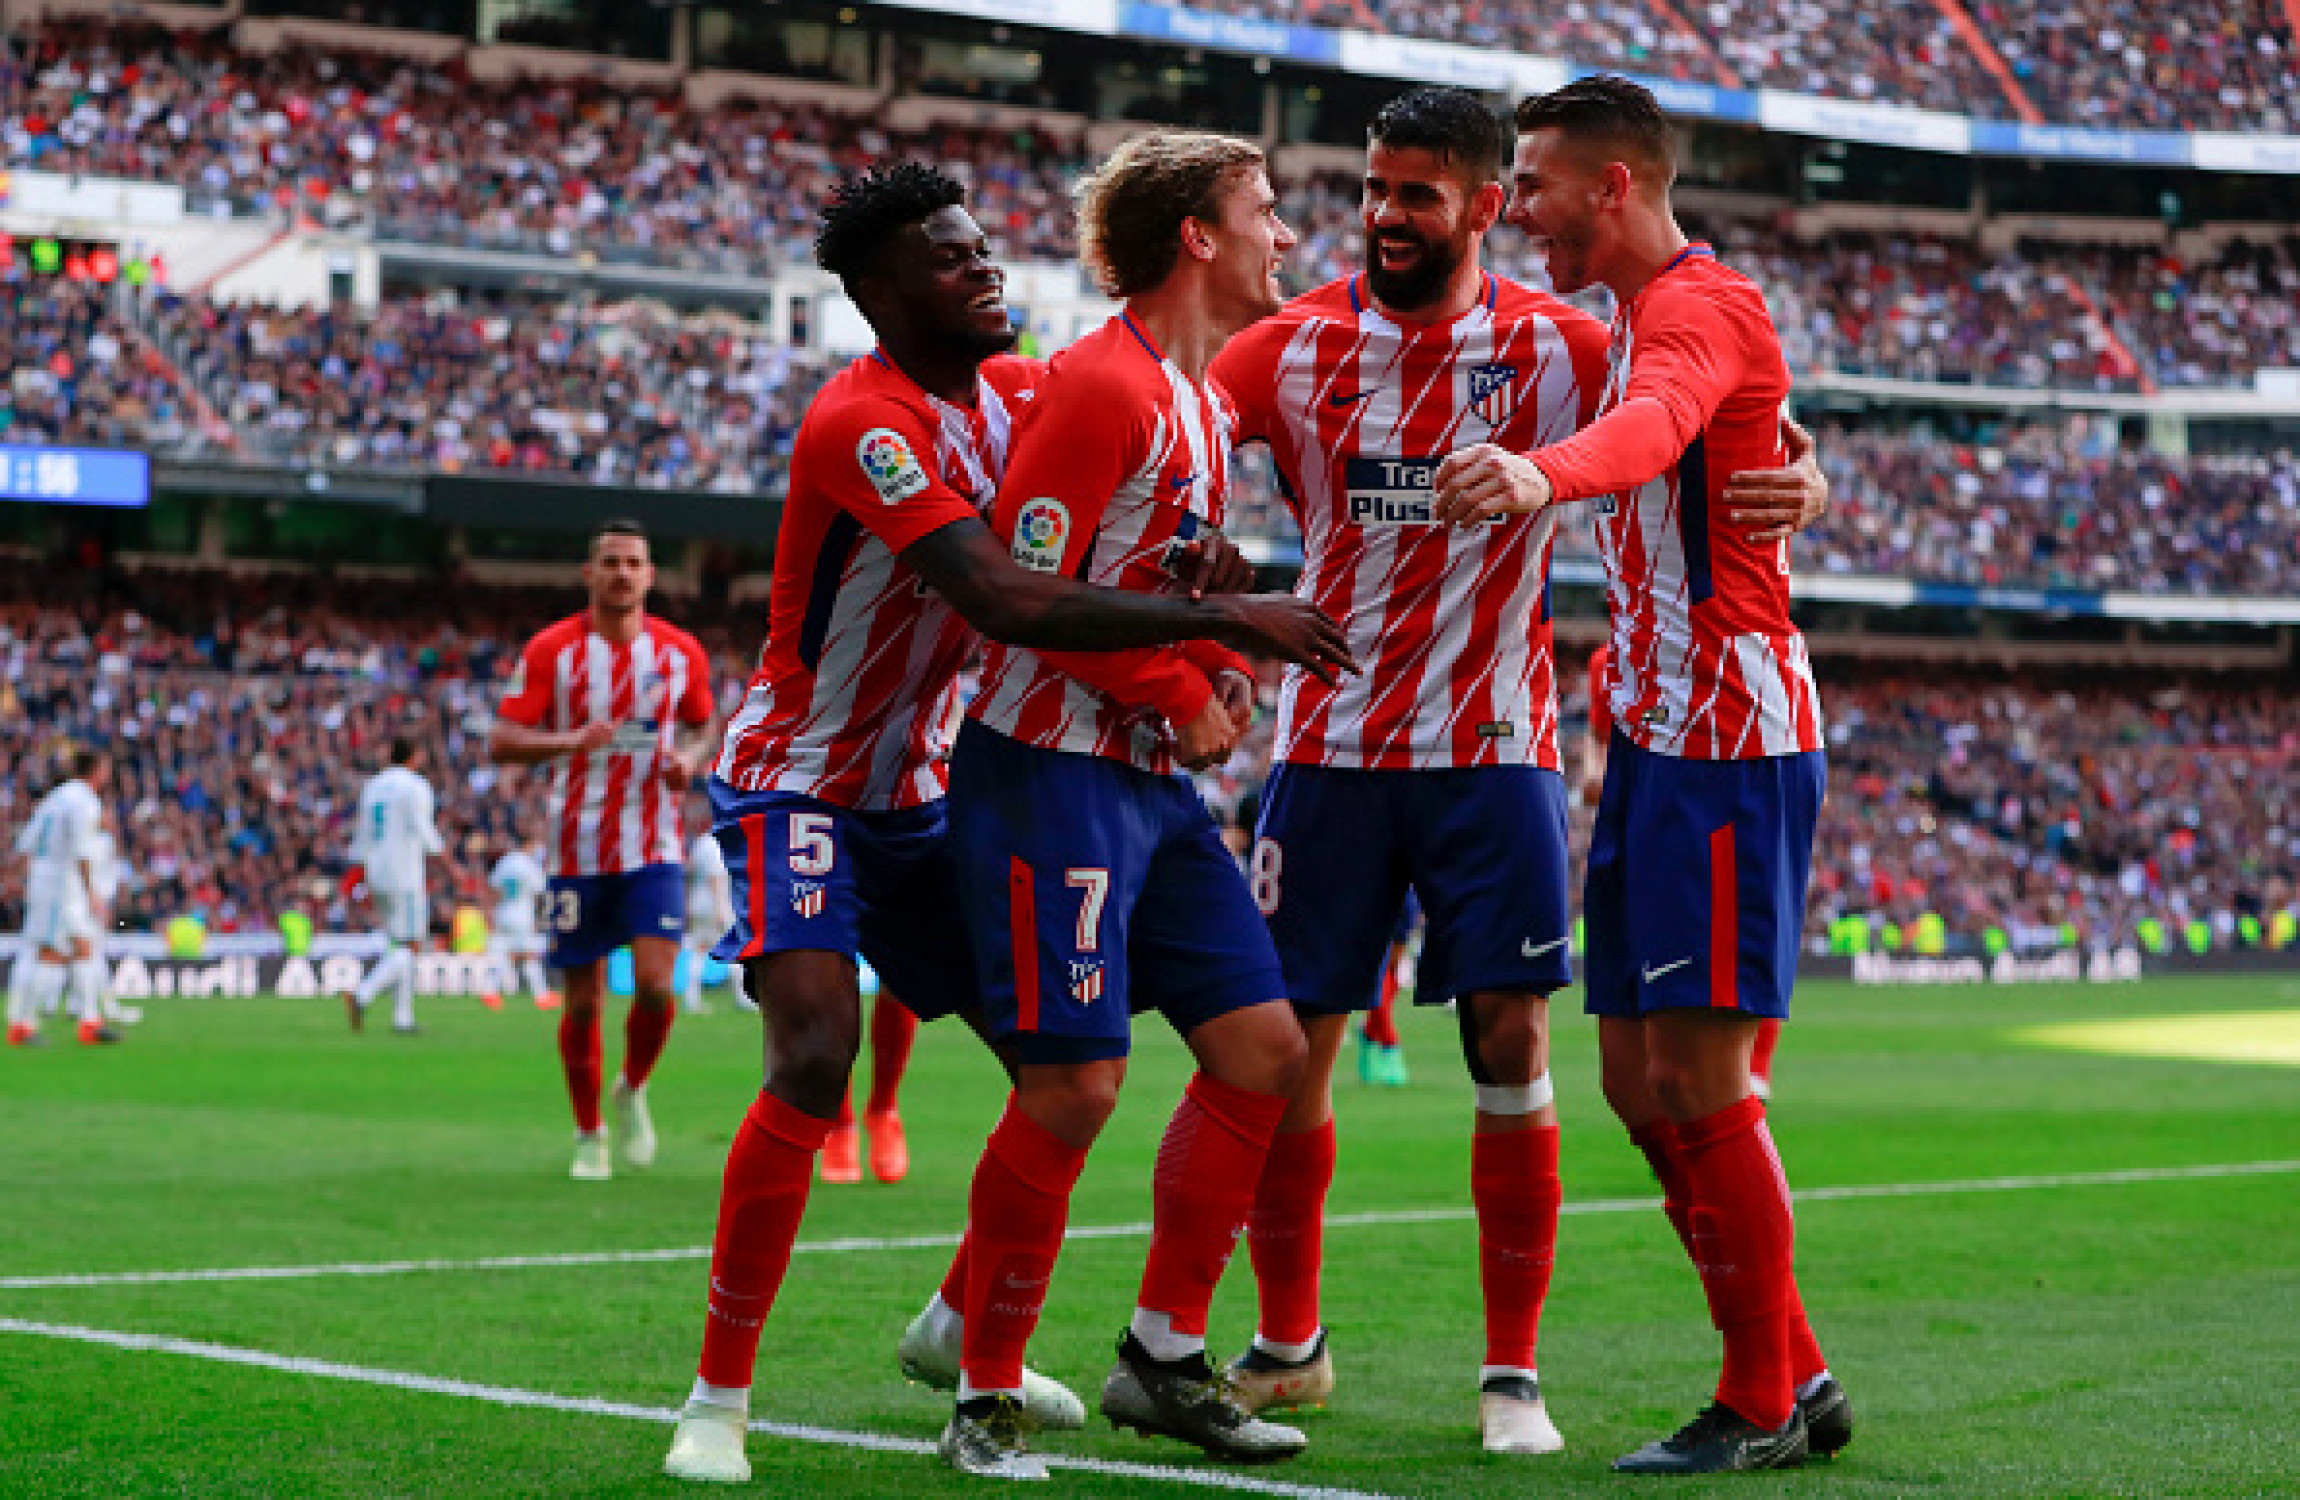 Real Madrid vs. Atletico Madrid live stream info, TV channel